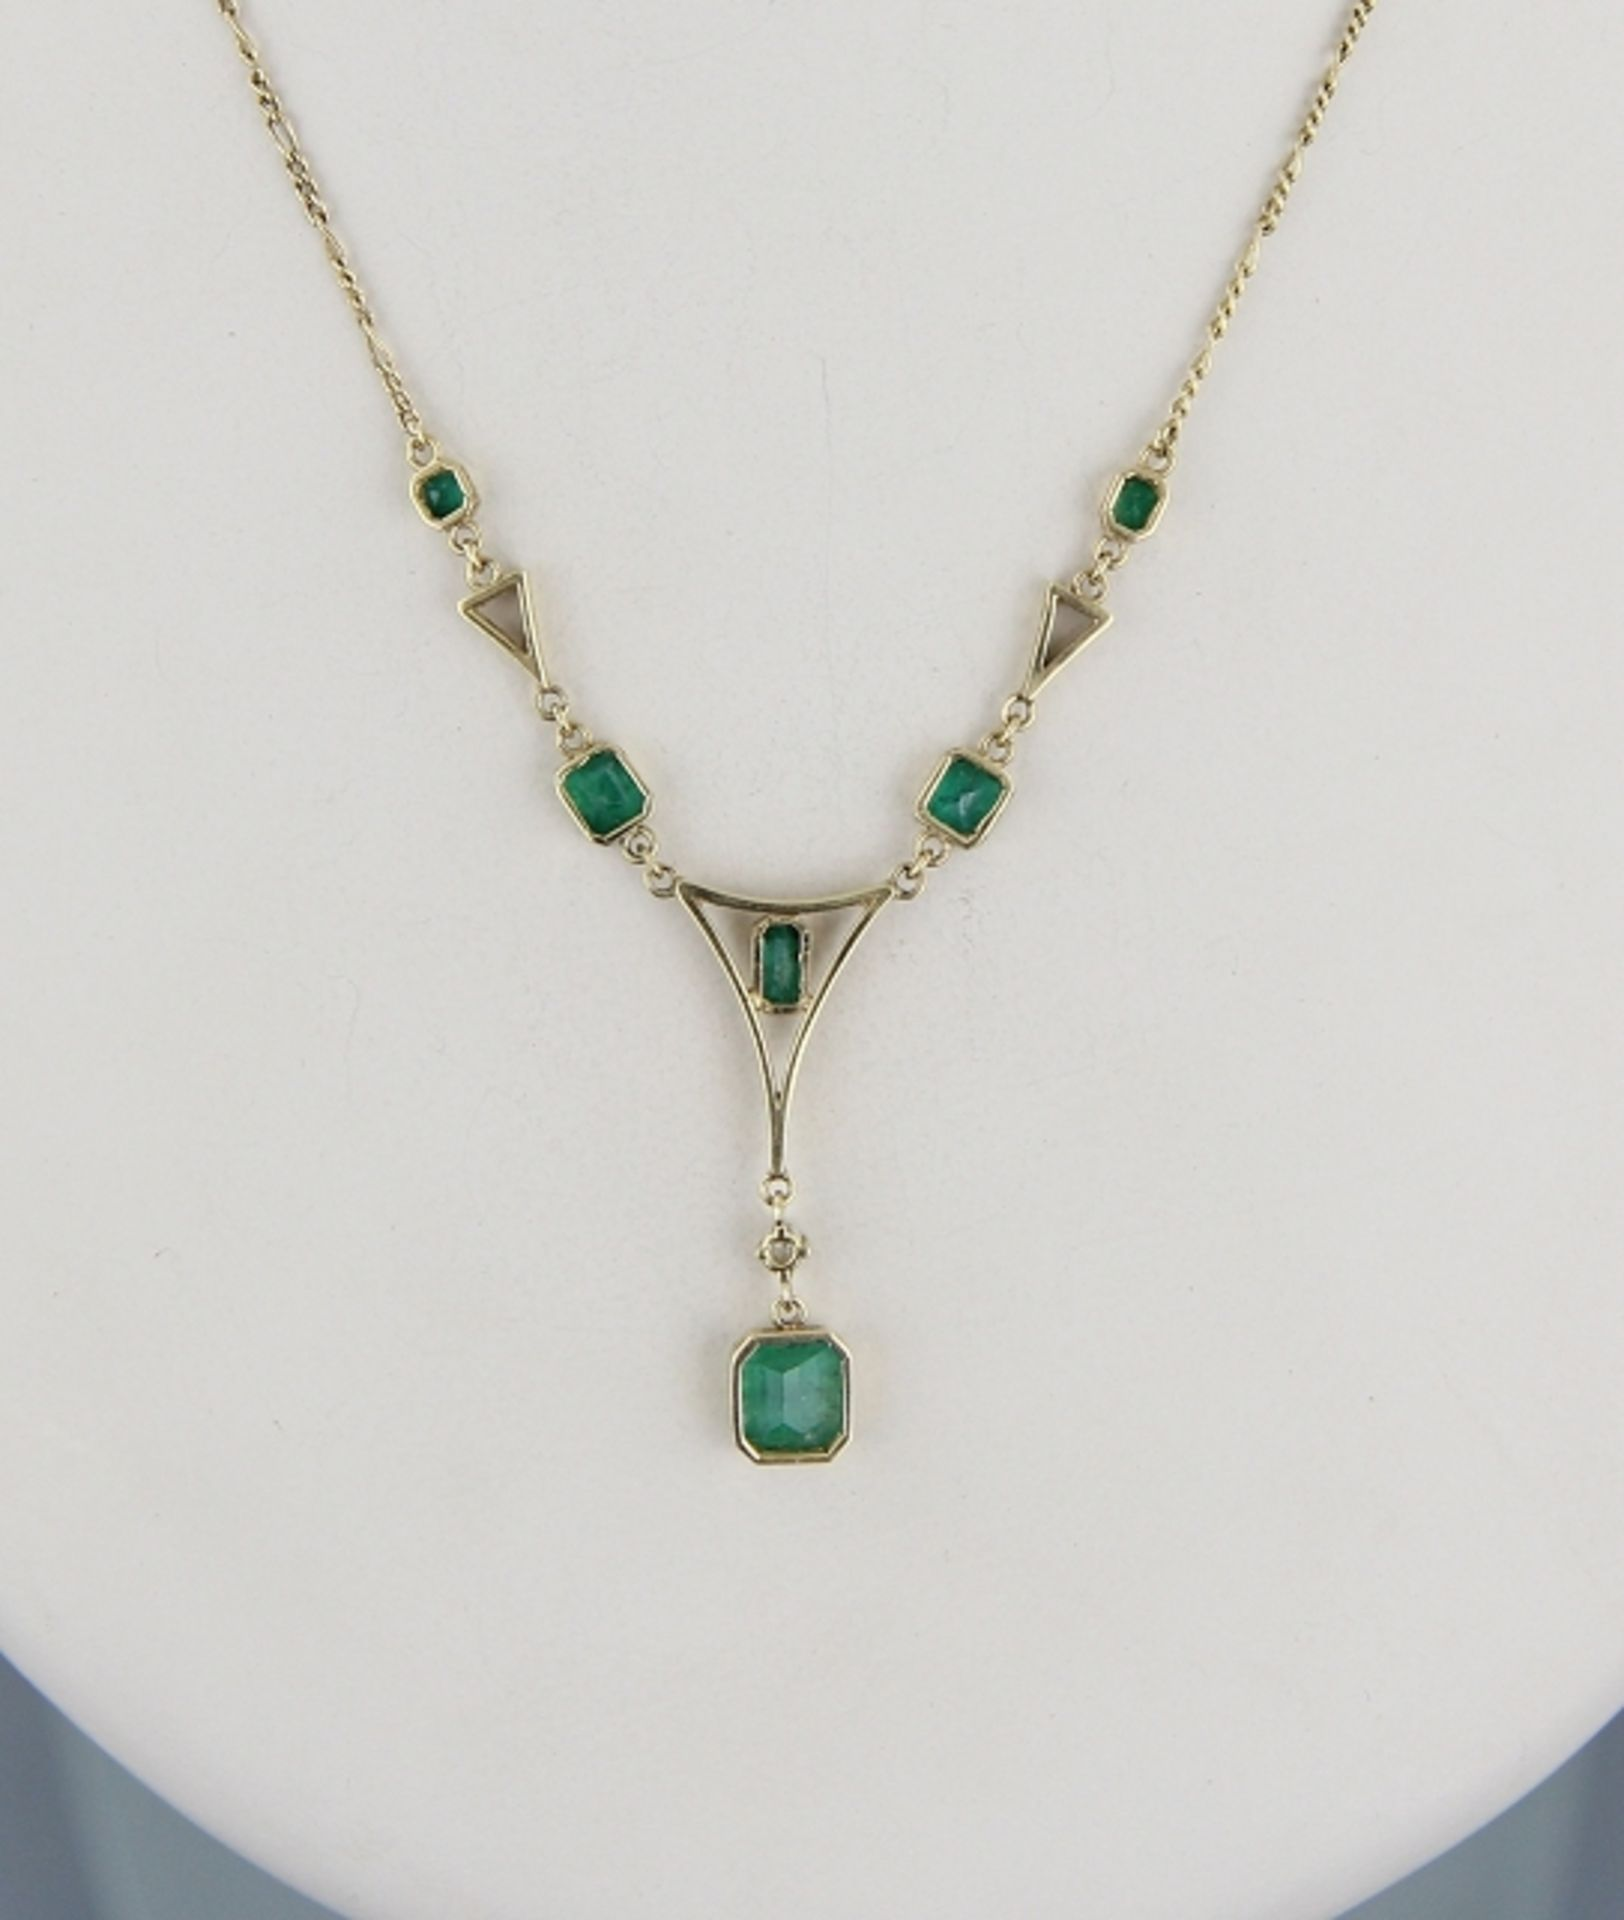 Collier - Image 2 of 2